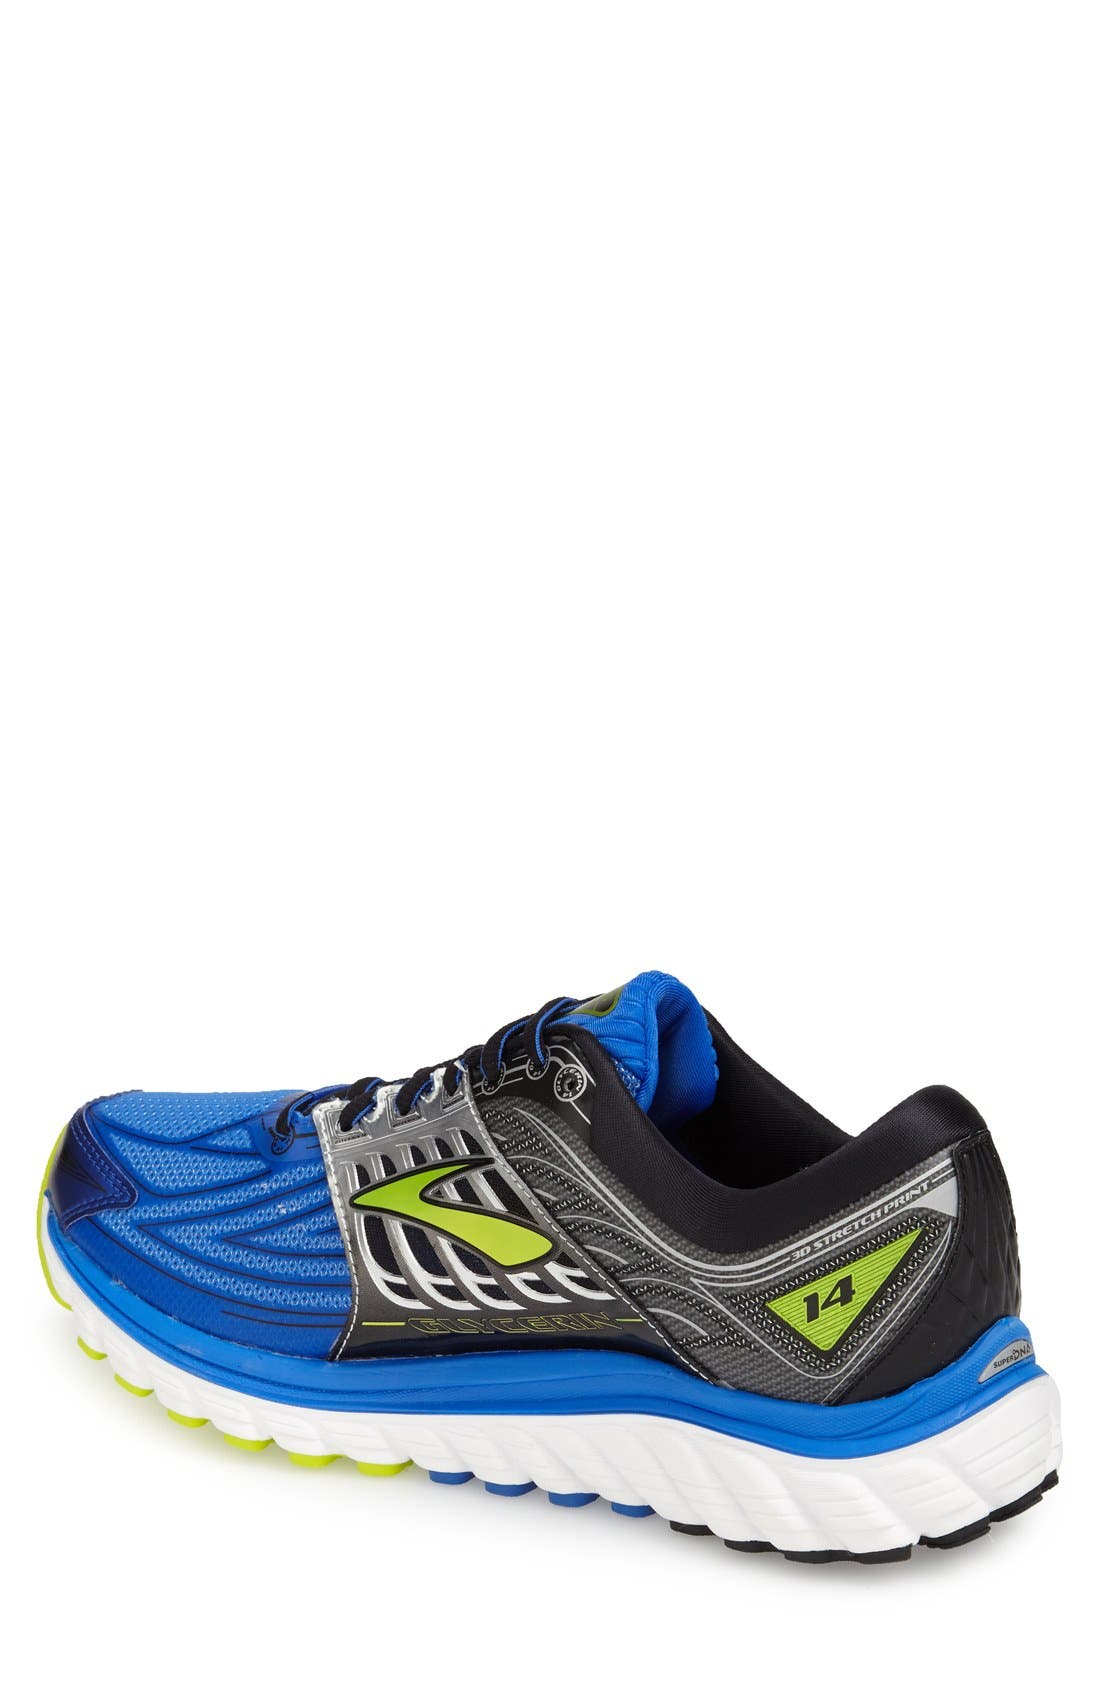 'Glycerin 14' Running Shoe,                             Alternate thumbnail 2, color,                             Electric Blue/ Black/ Punch